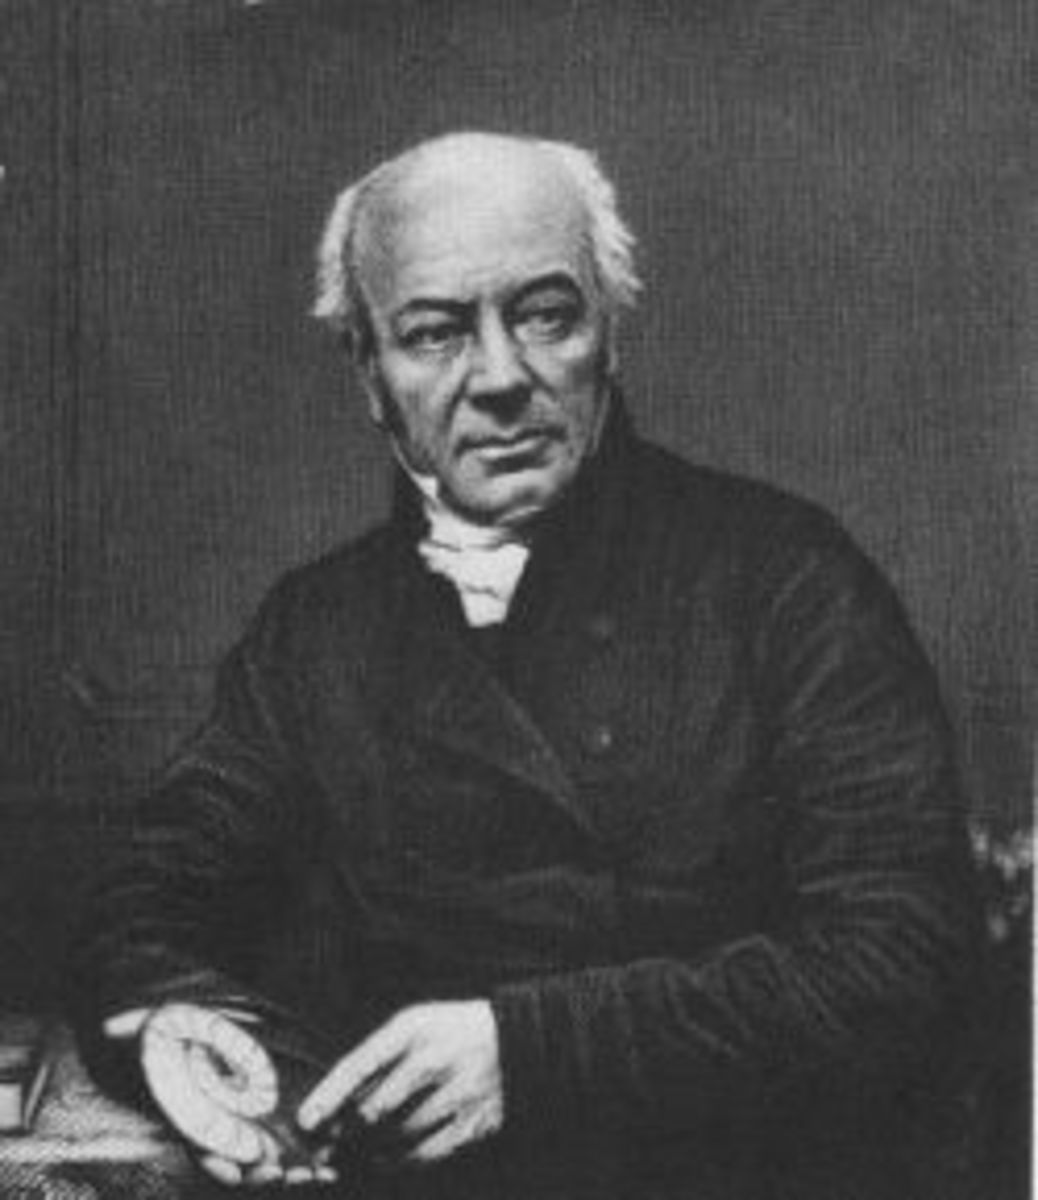 Sir William Buckland